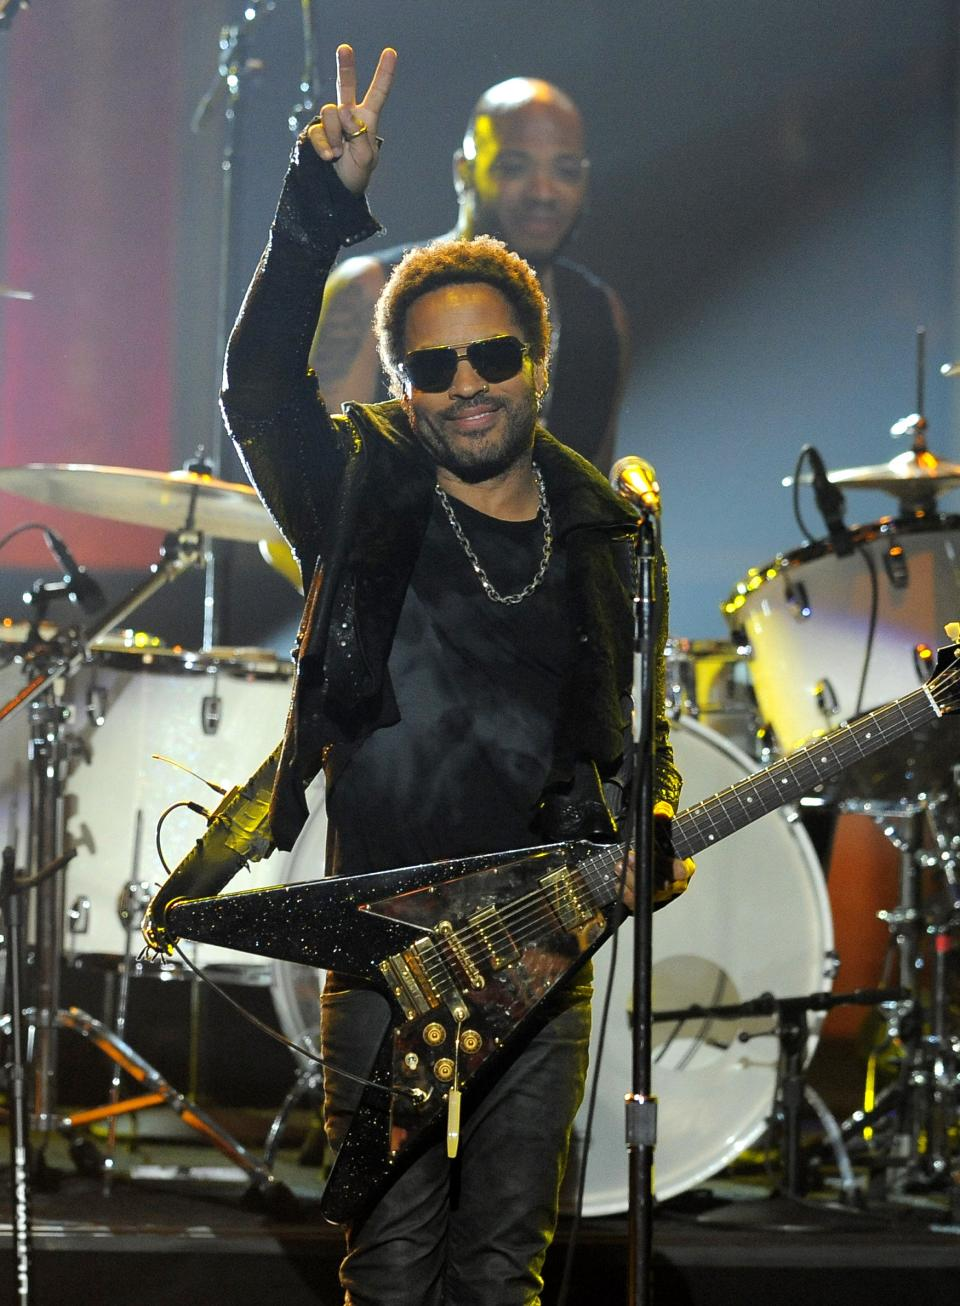 Lenny Kravitz performs at the 43rd NAACP Image Awards on Friday, Feb. 17, 2012, in Los Angeles. (AP Photo/Chris Pizzello)